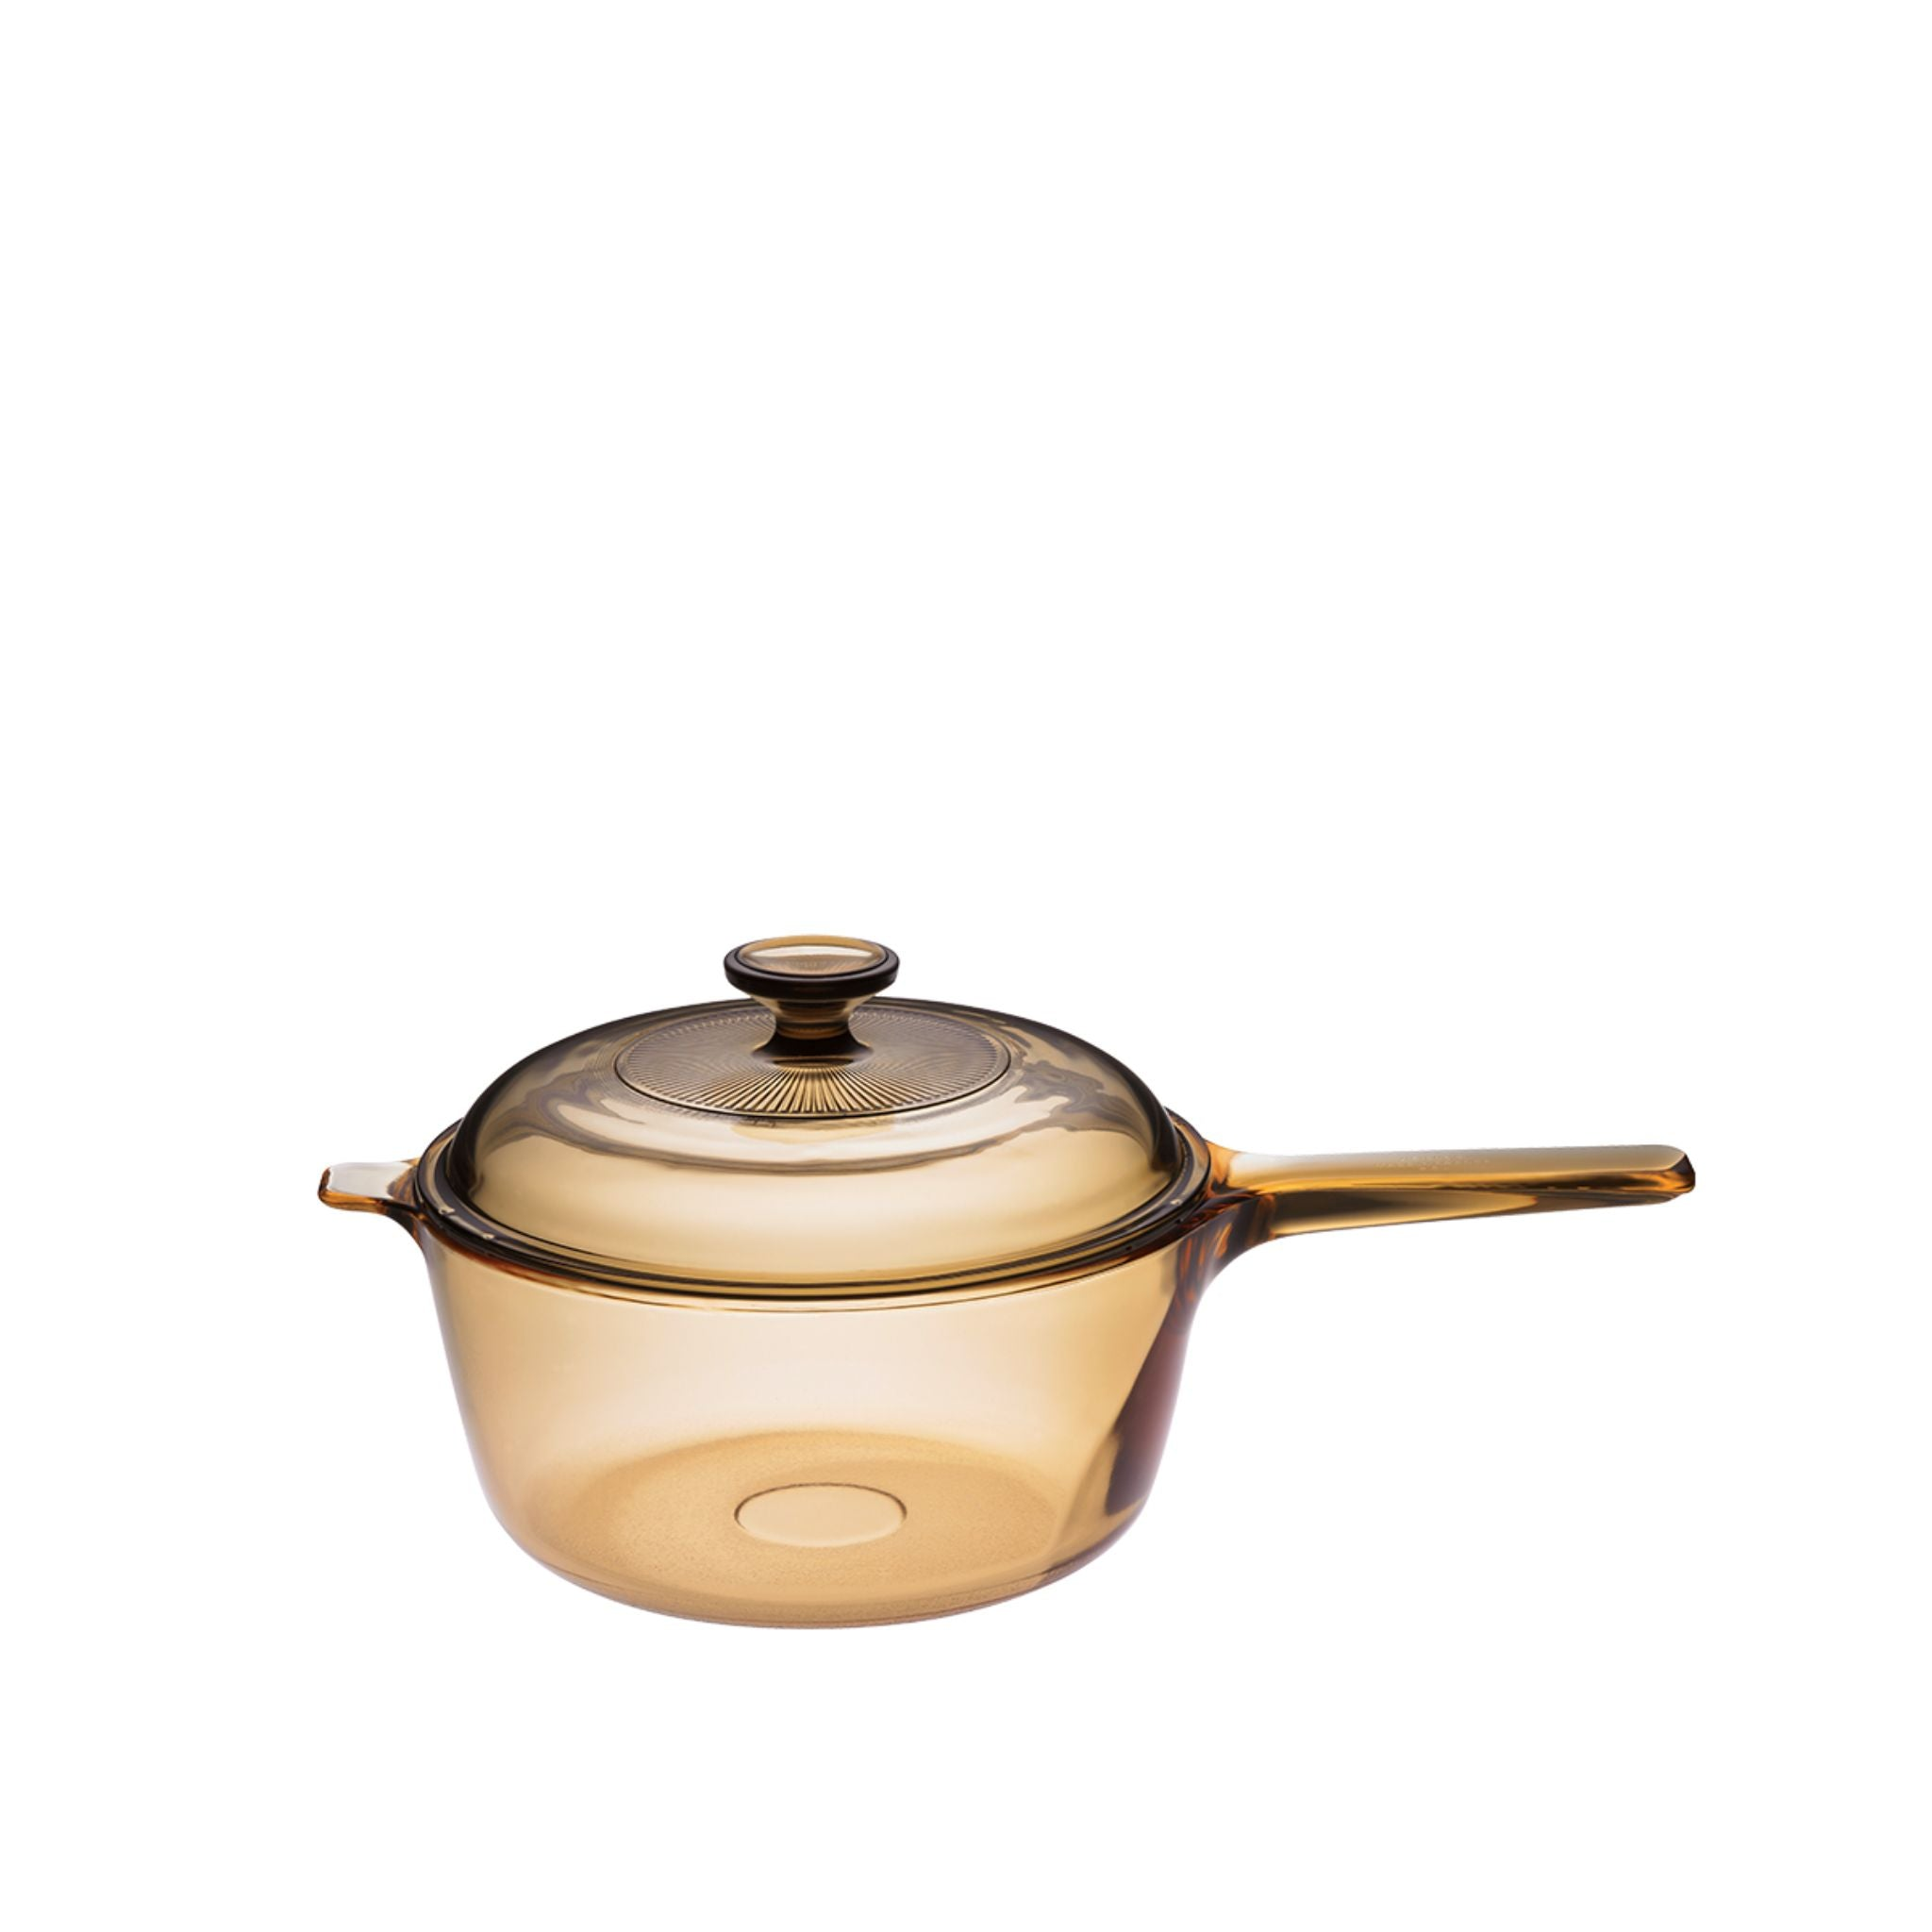 Visions 2L Covered Saucepan - Amber